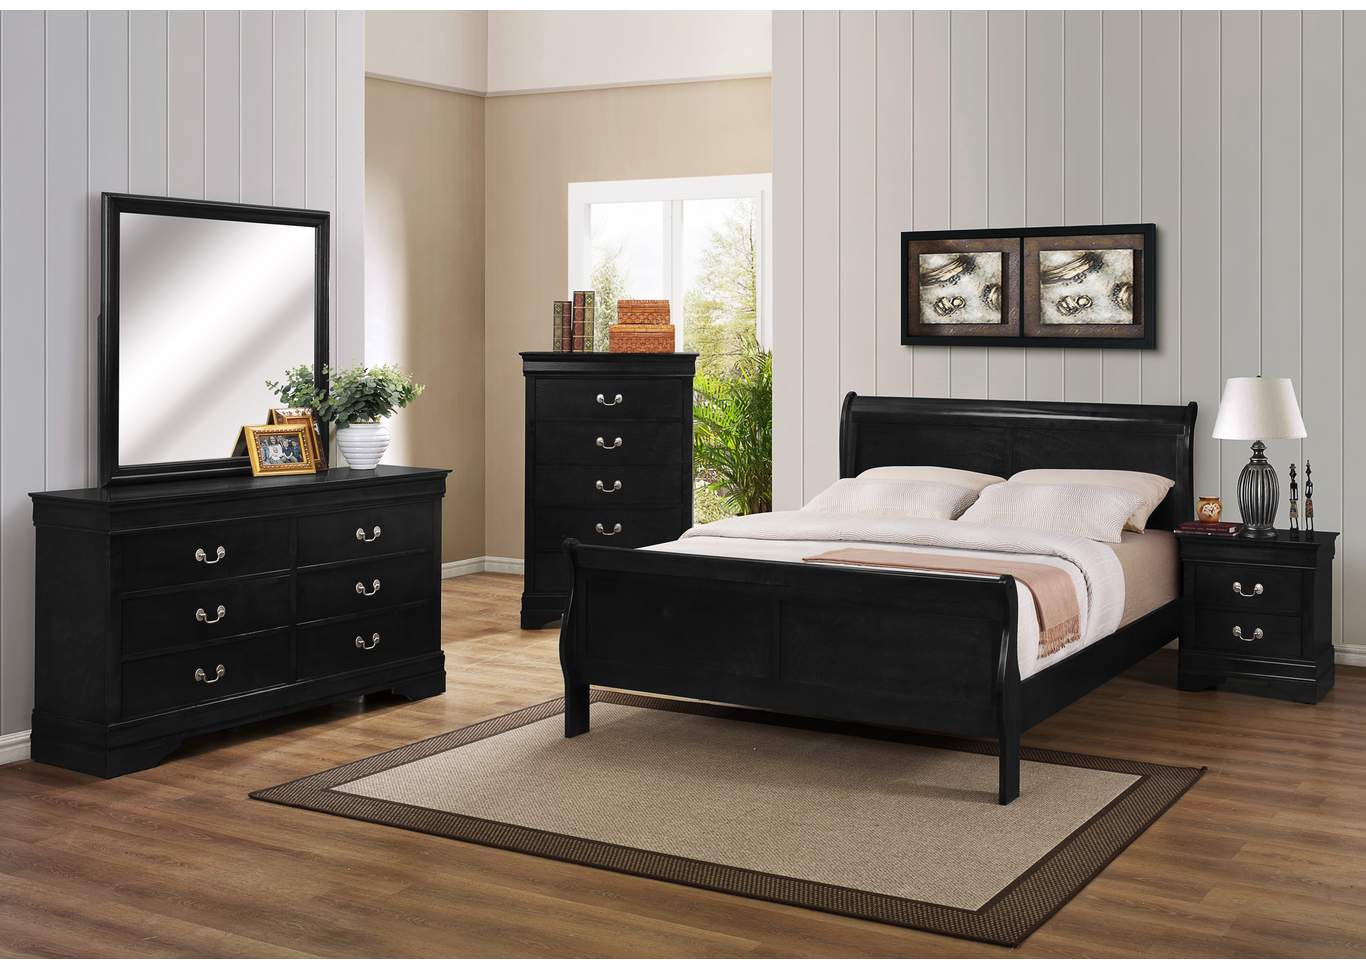 Louis Philip Black Twin Sleigh Bed w/6 Drawer Dresser, Mirror and 5 Drawer Chest,Crown Mark